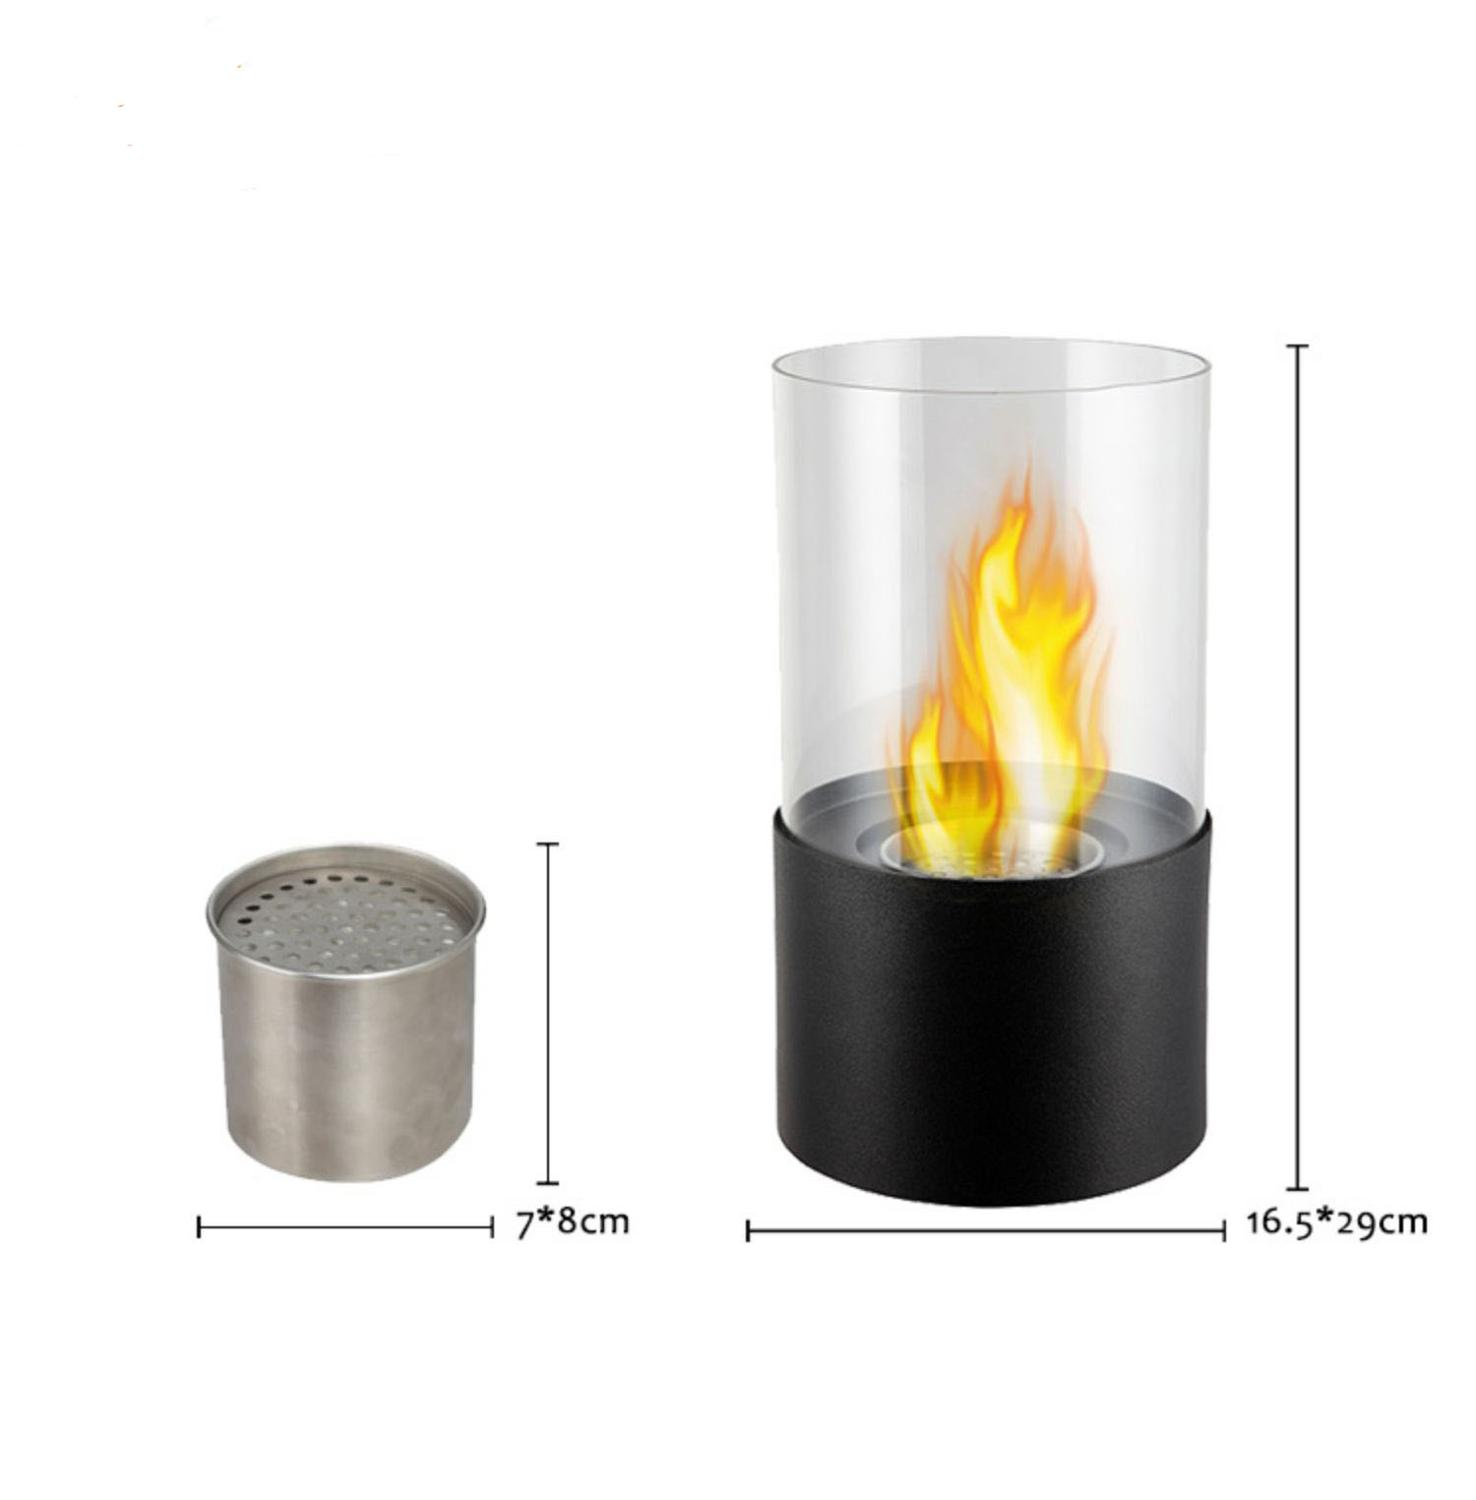 American Desktop Ethanol Fireplace Decoration Smokeless  Small Real Flaming Alcohol Tabletop Fireplace Ornament